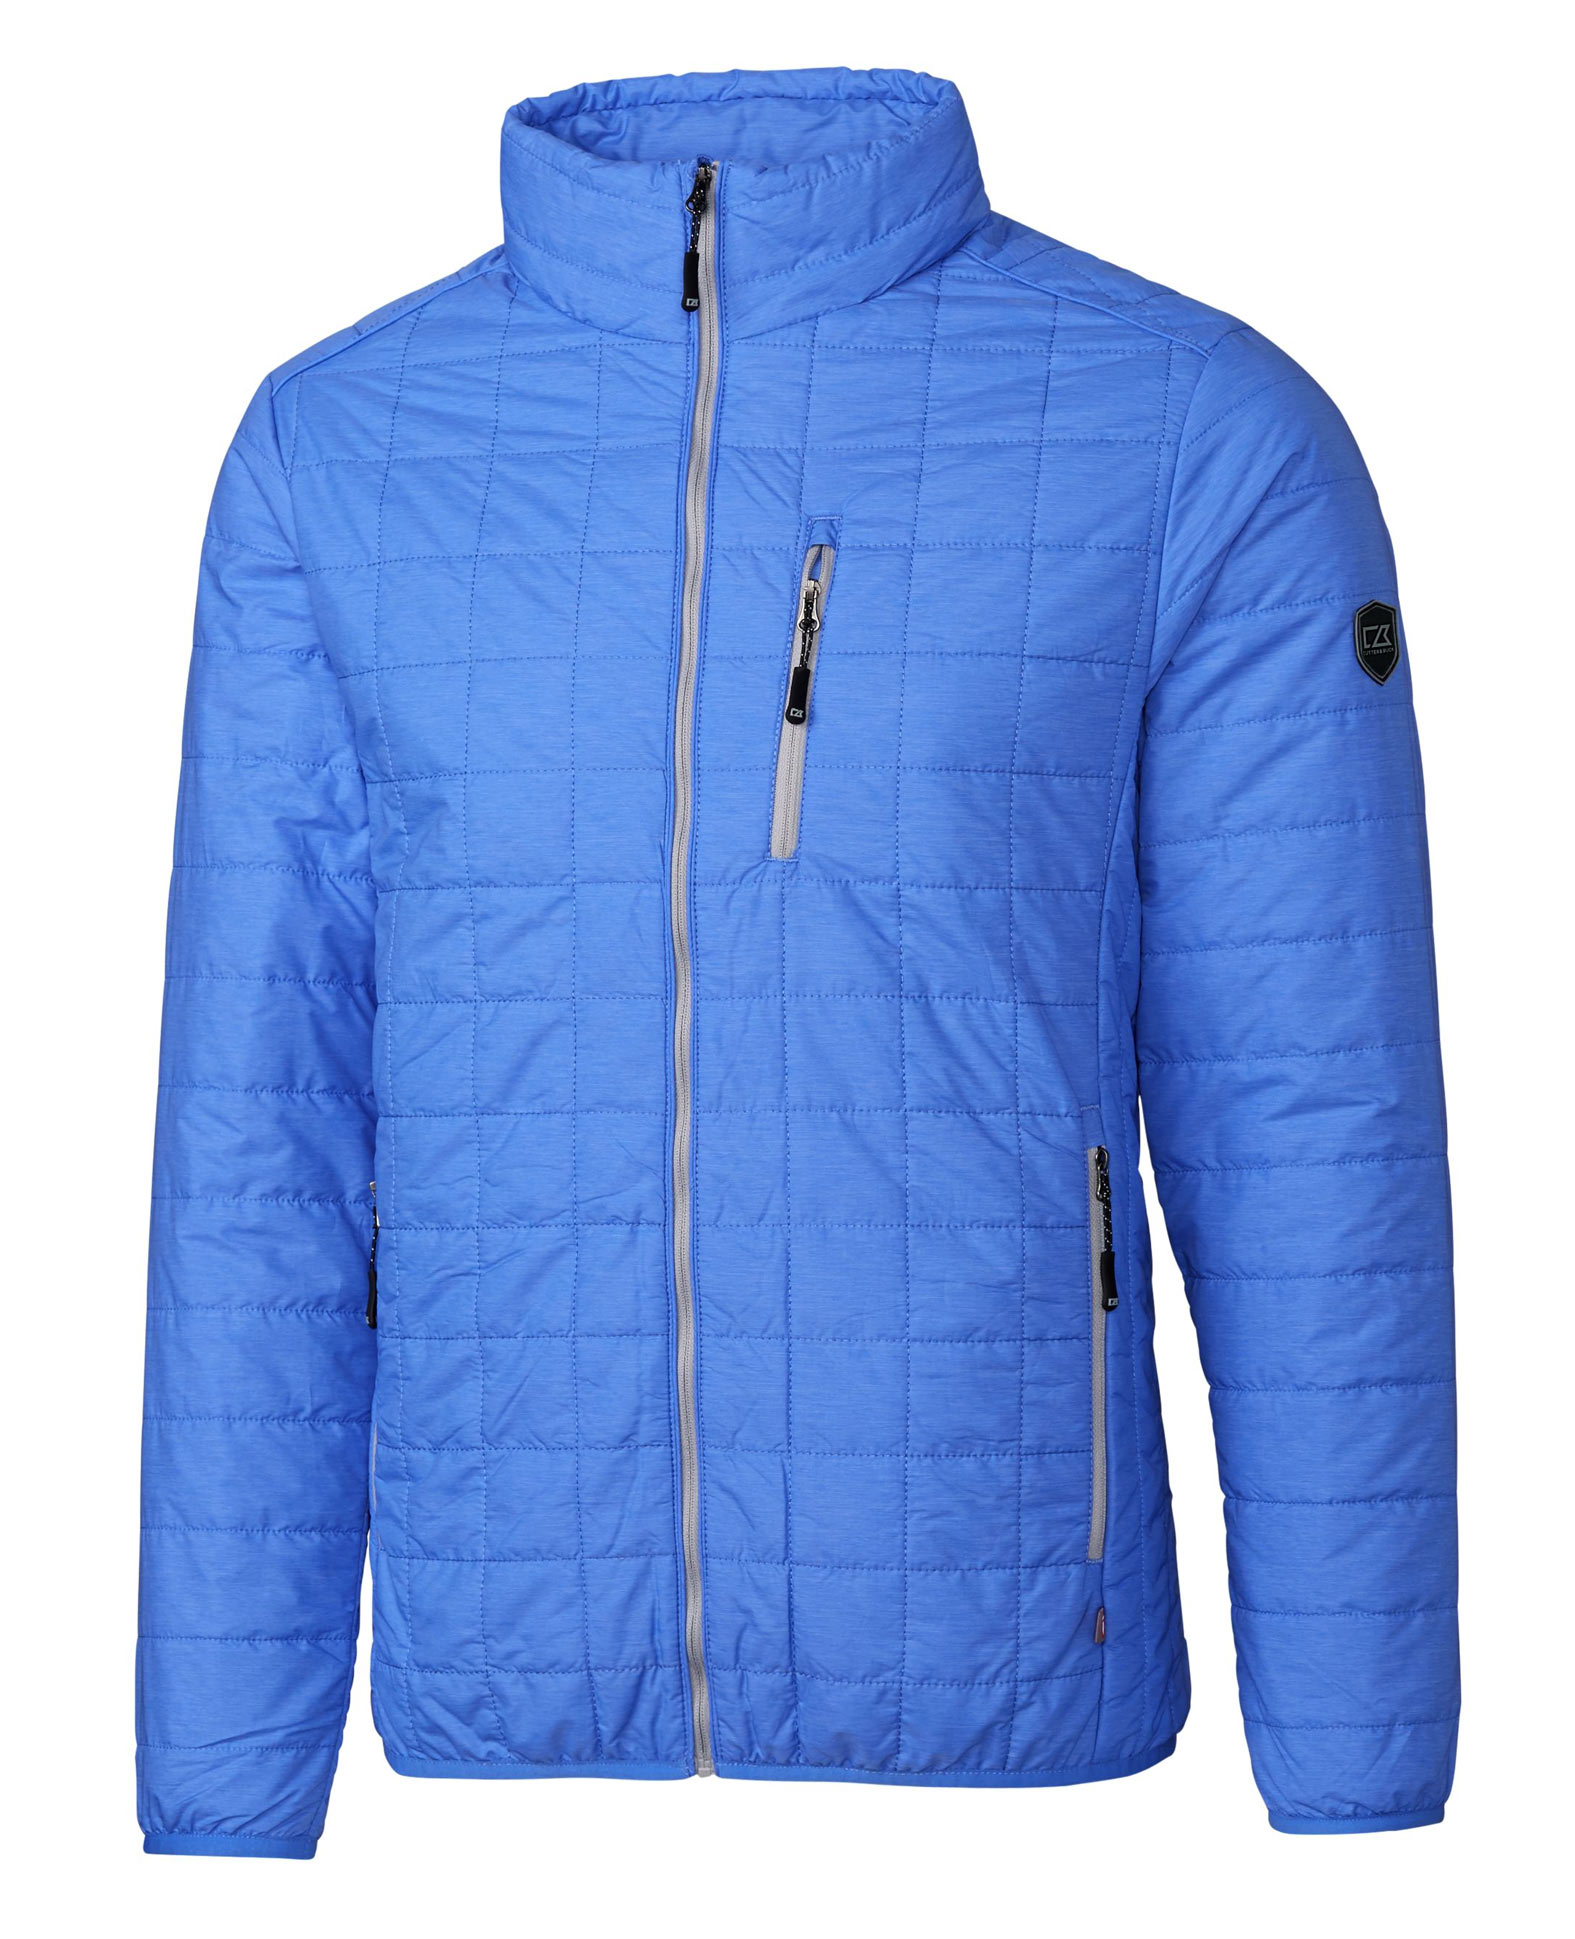 Mens Rainier Jacket